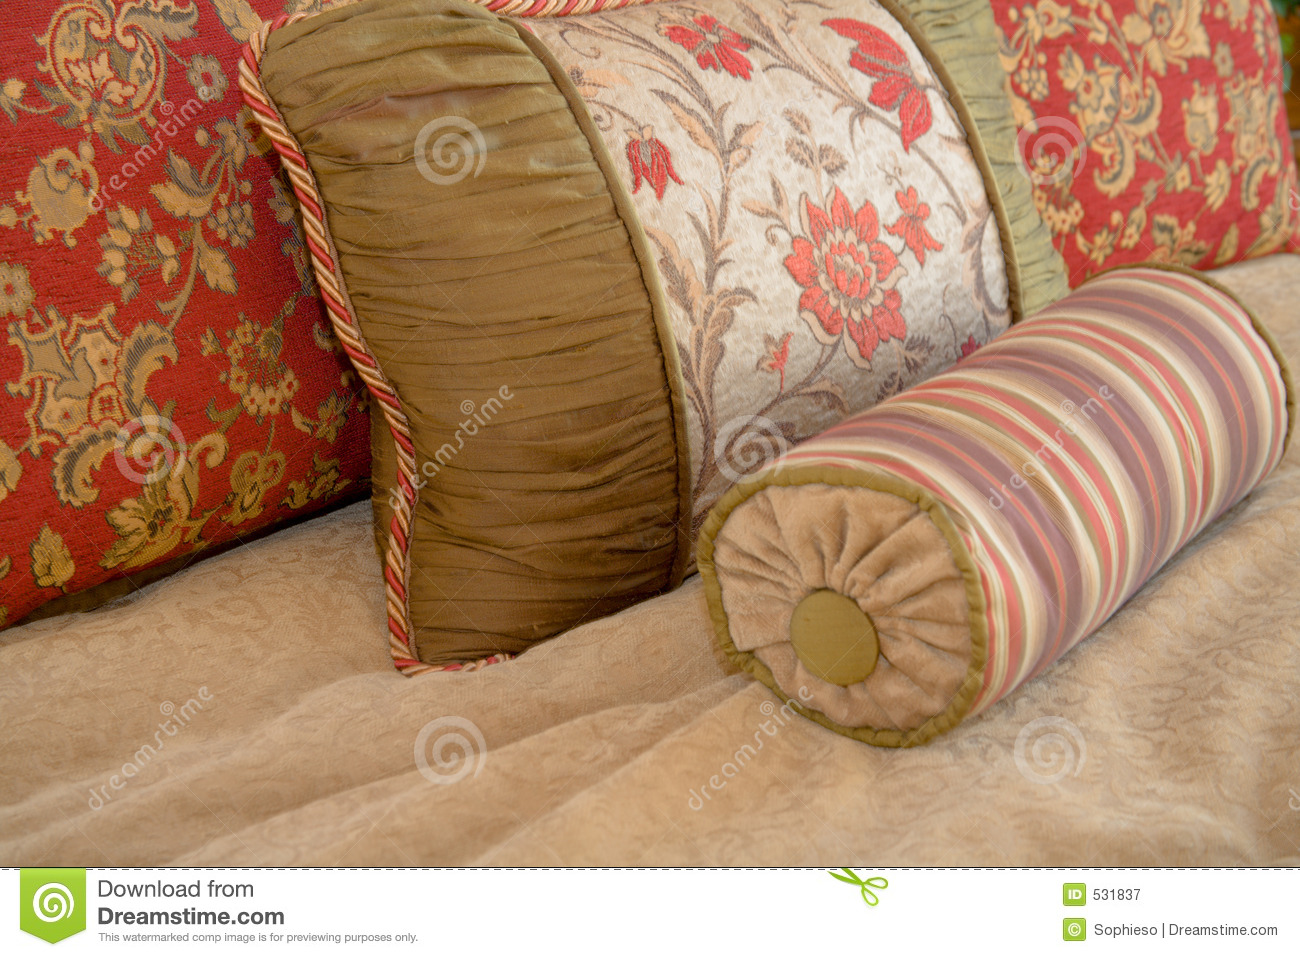 Throw Pillow Arrangement : Pillow Arrangement Royalty Free Stock Photography - Image: 531837